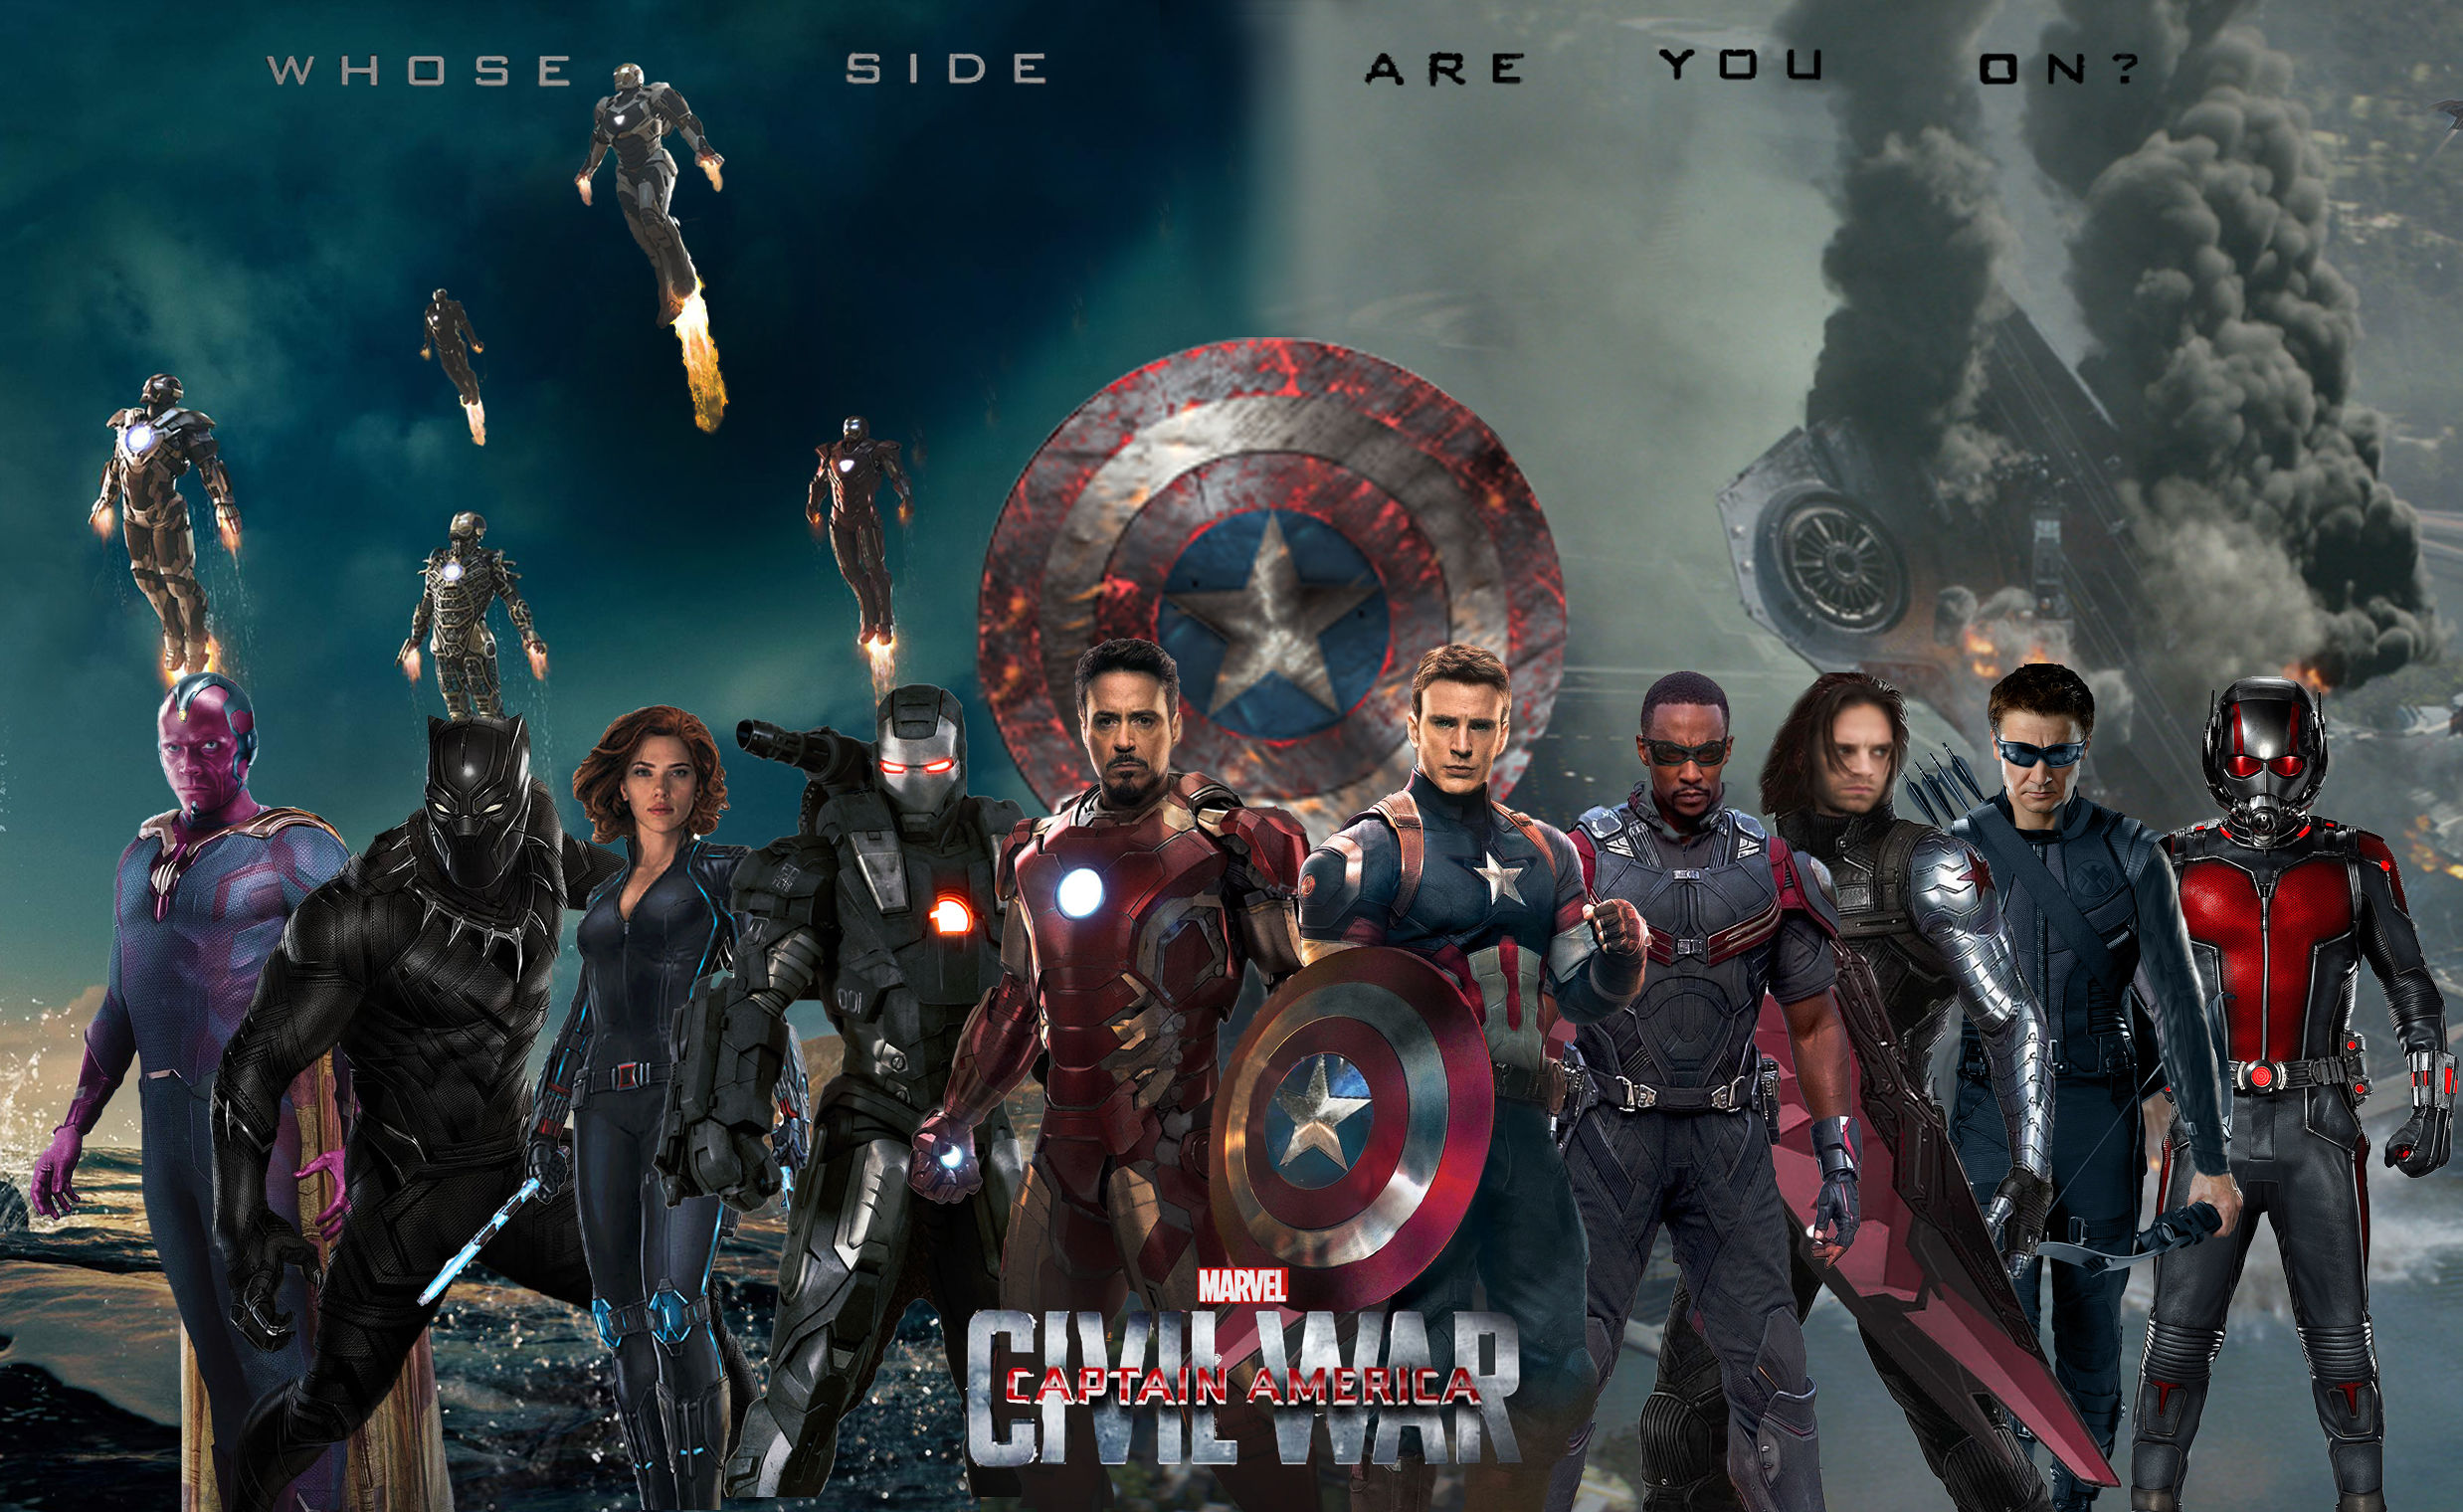 captain america civil war wallpaper more final wallpaper for now 2476x1520